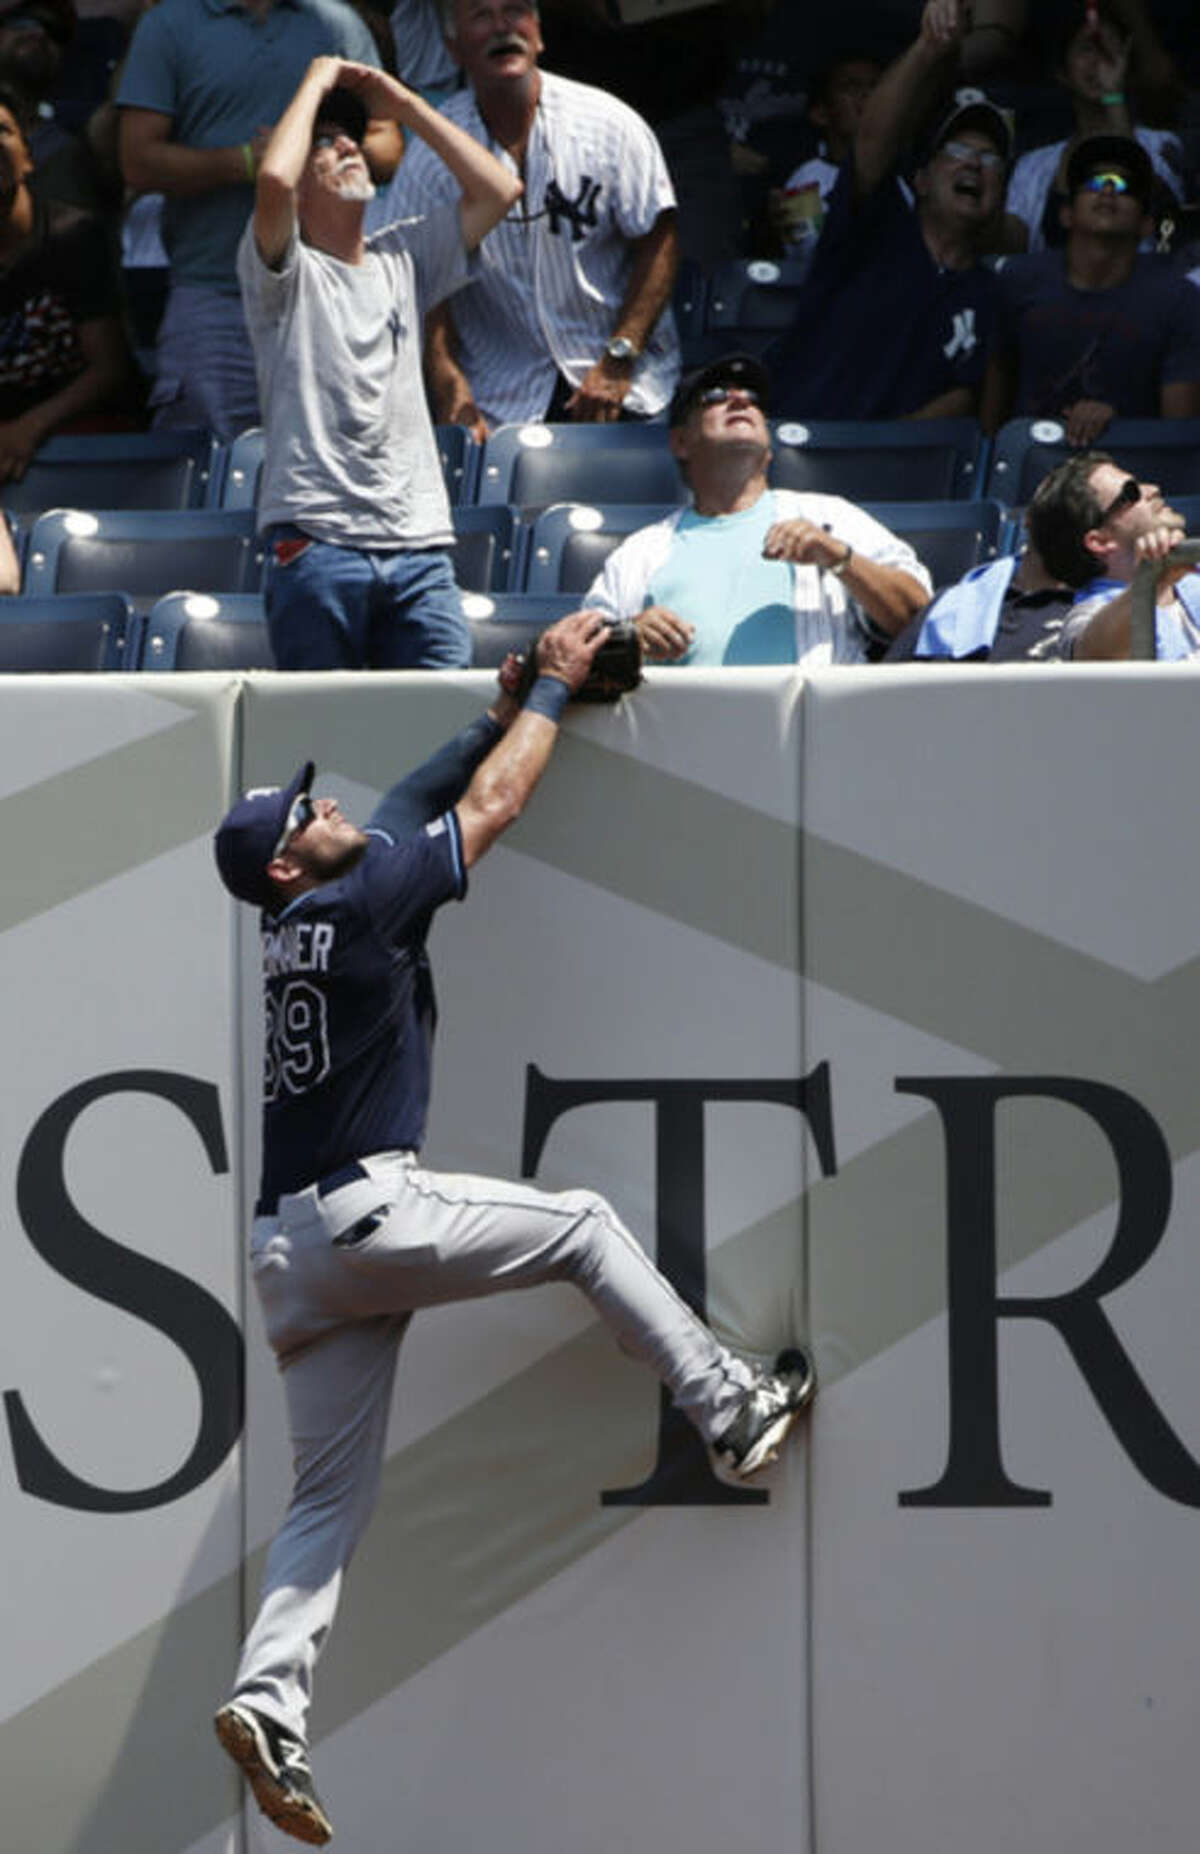 Tampa Bay Rays right fielder Kevin Kiermaier (39) climbs the outfield wall on Brian McCann's third inning home run in a baseball game at Yankee Stadium in New York, Wednesday, July 2, 2014. (AP Photo/Kathy Willens)